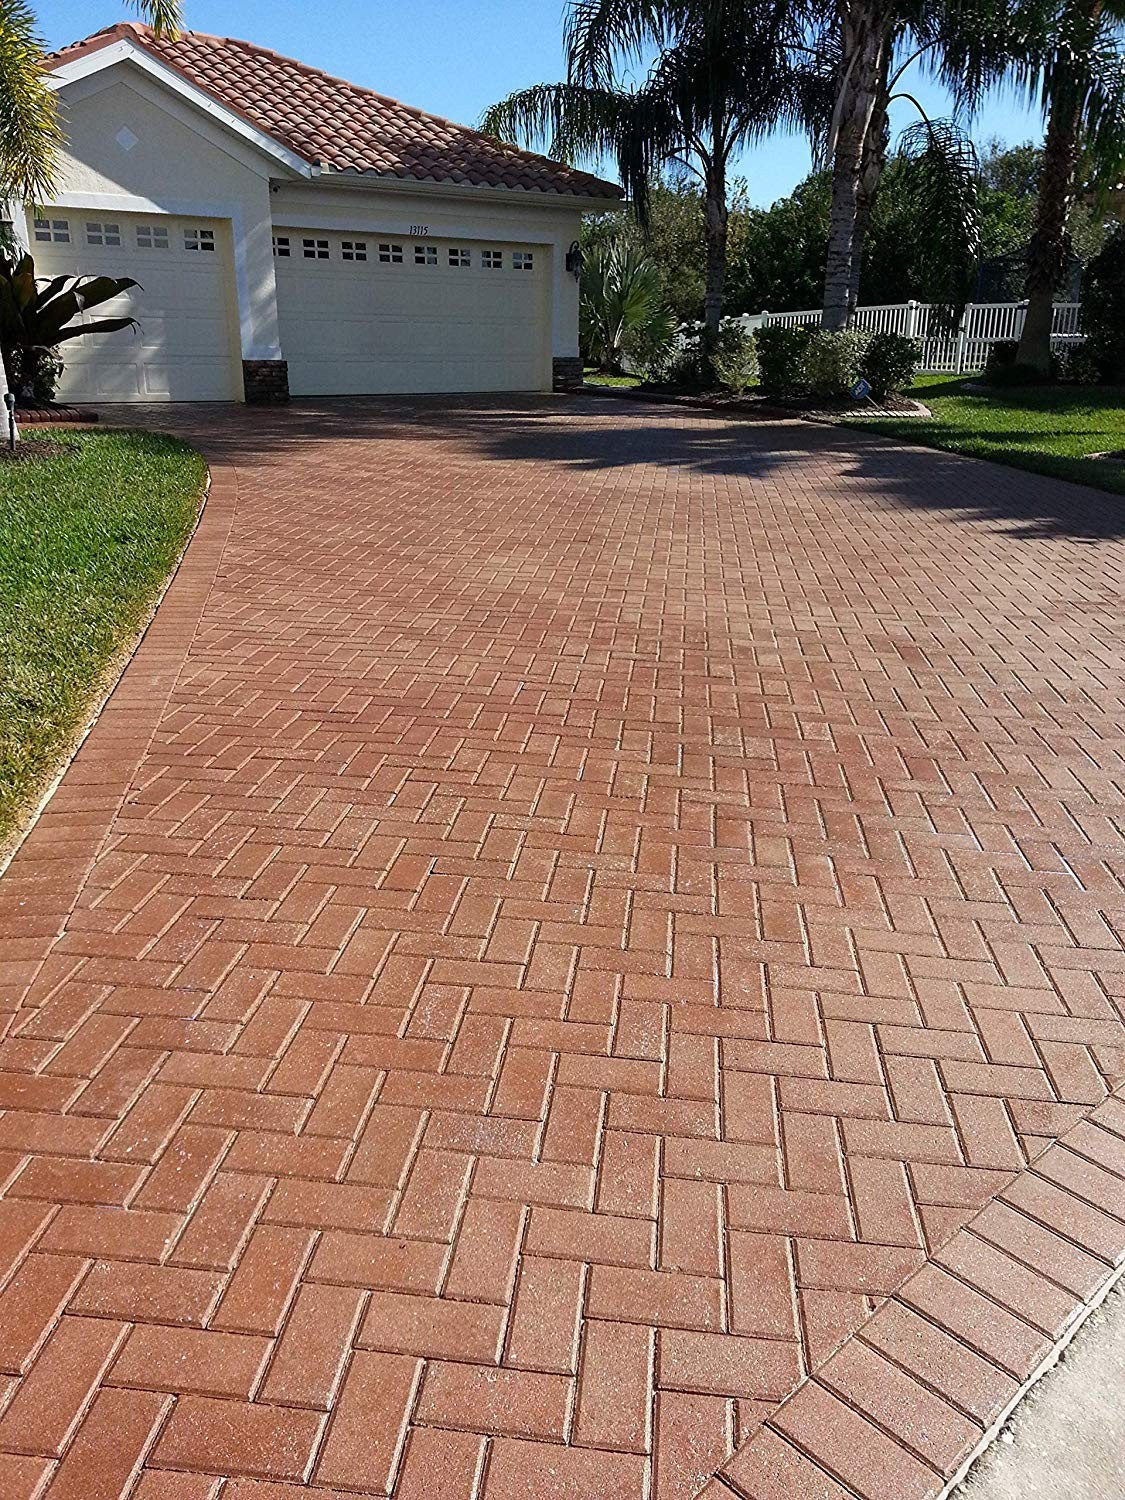 5 Gallon Dominator LG+, Low Gloss Paver Sealer (Wet Look), Commercial Grade, Water Based, Color Enhancing, Easy Application